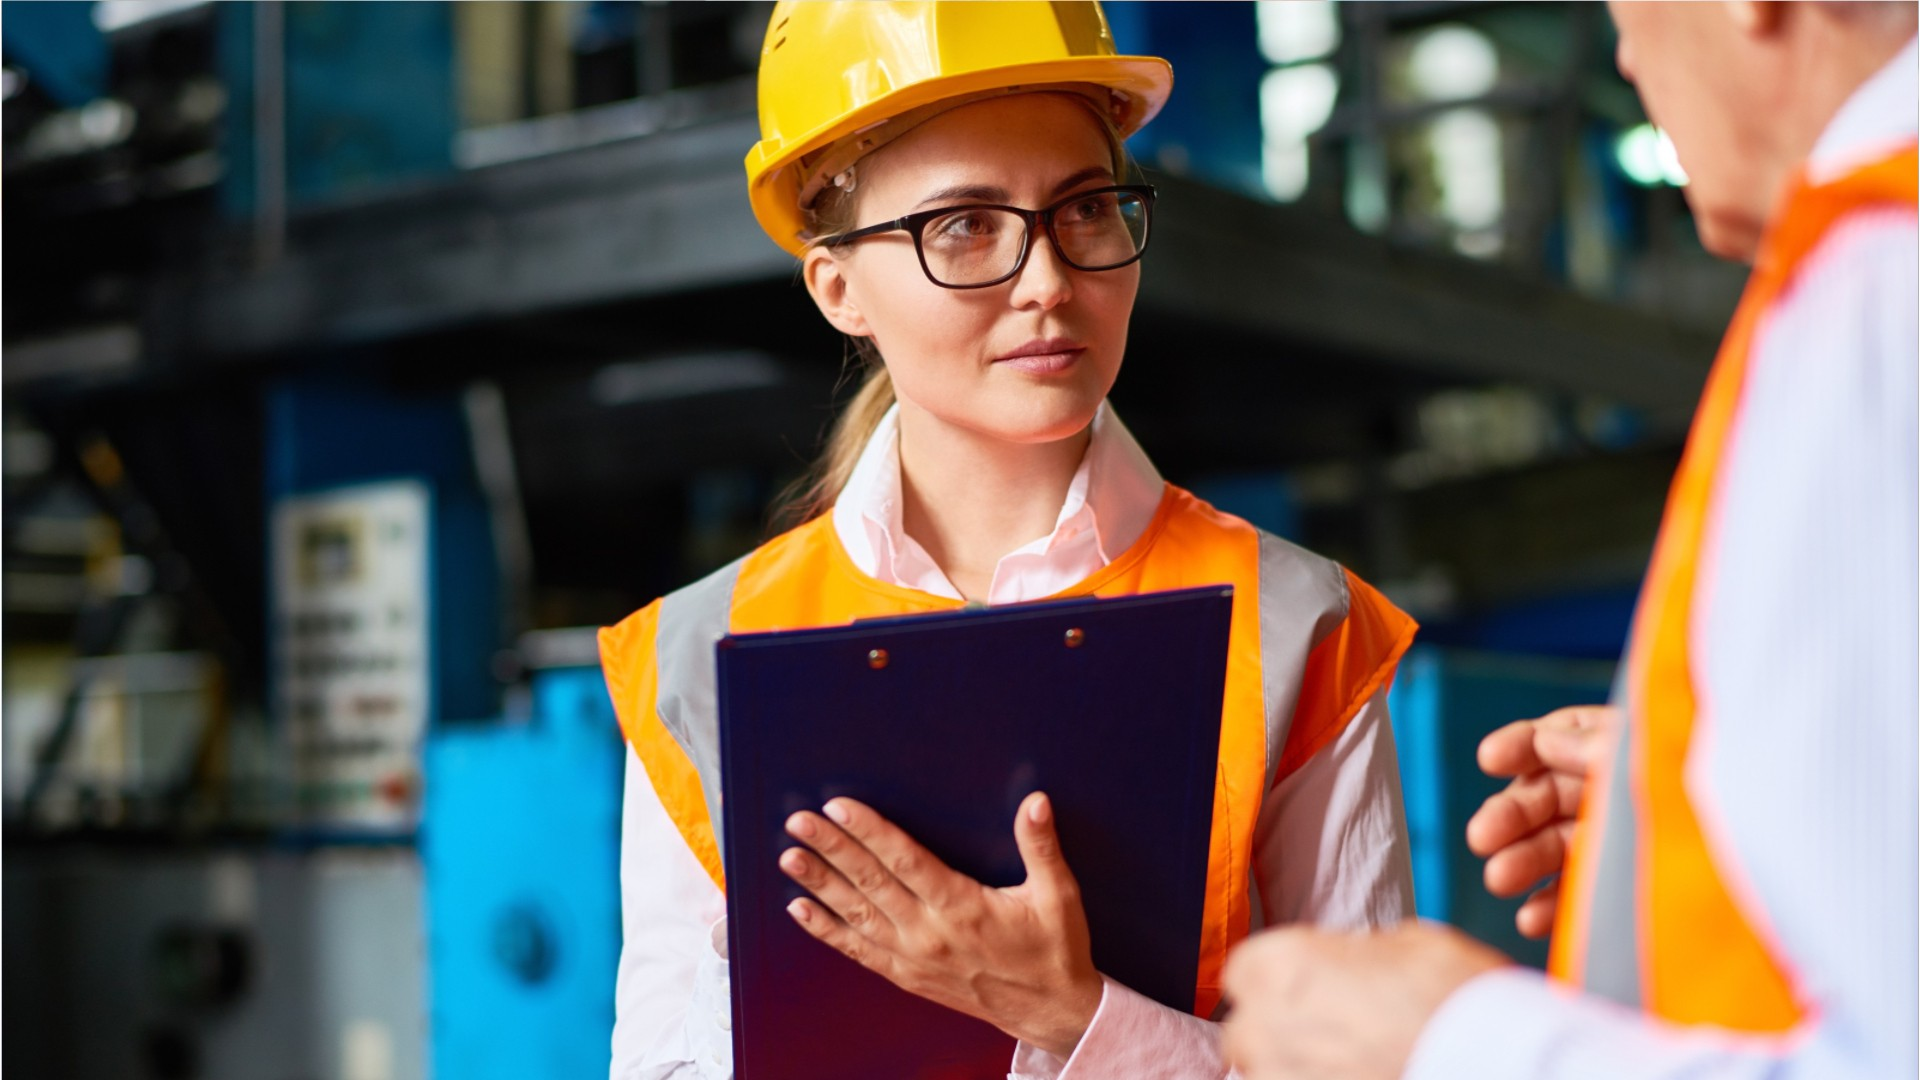 job safety in workplace